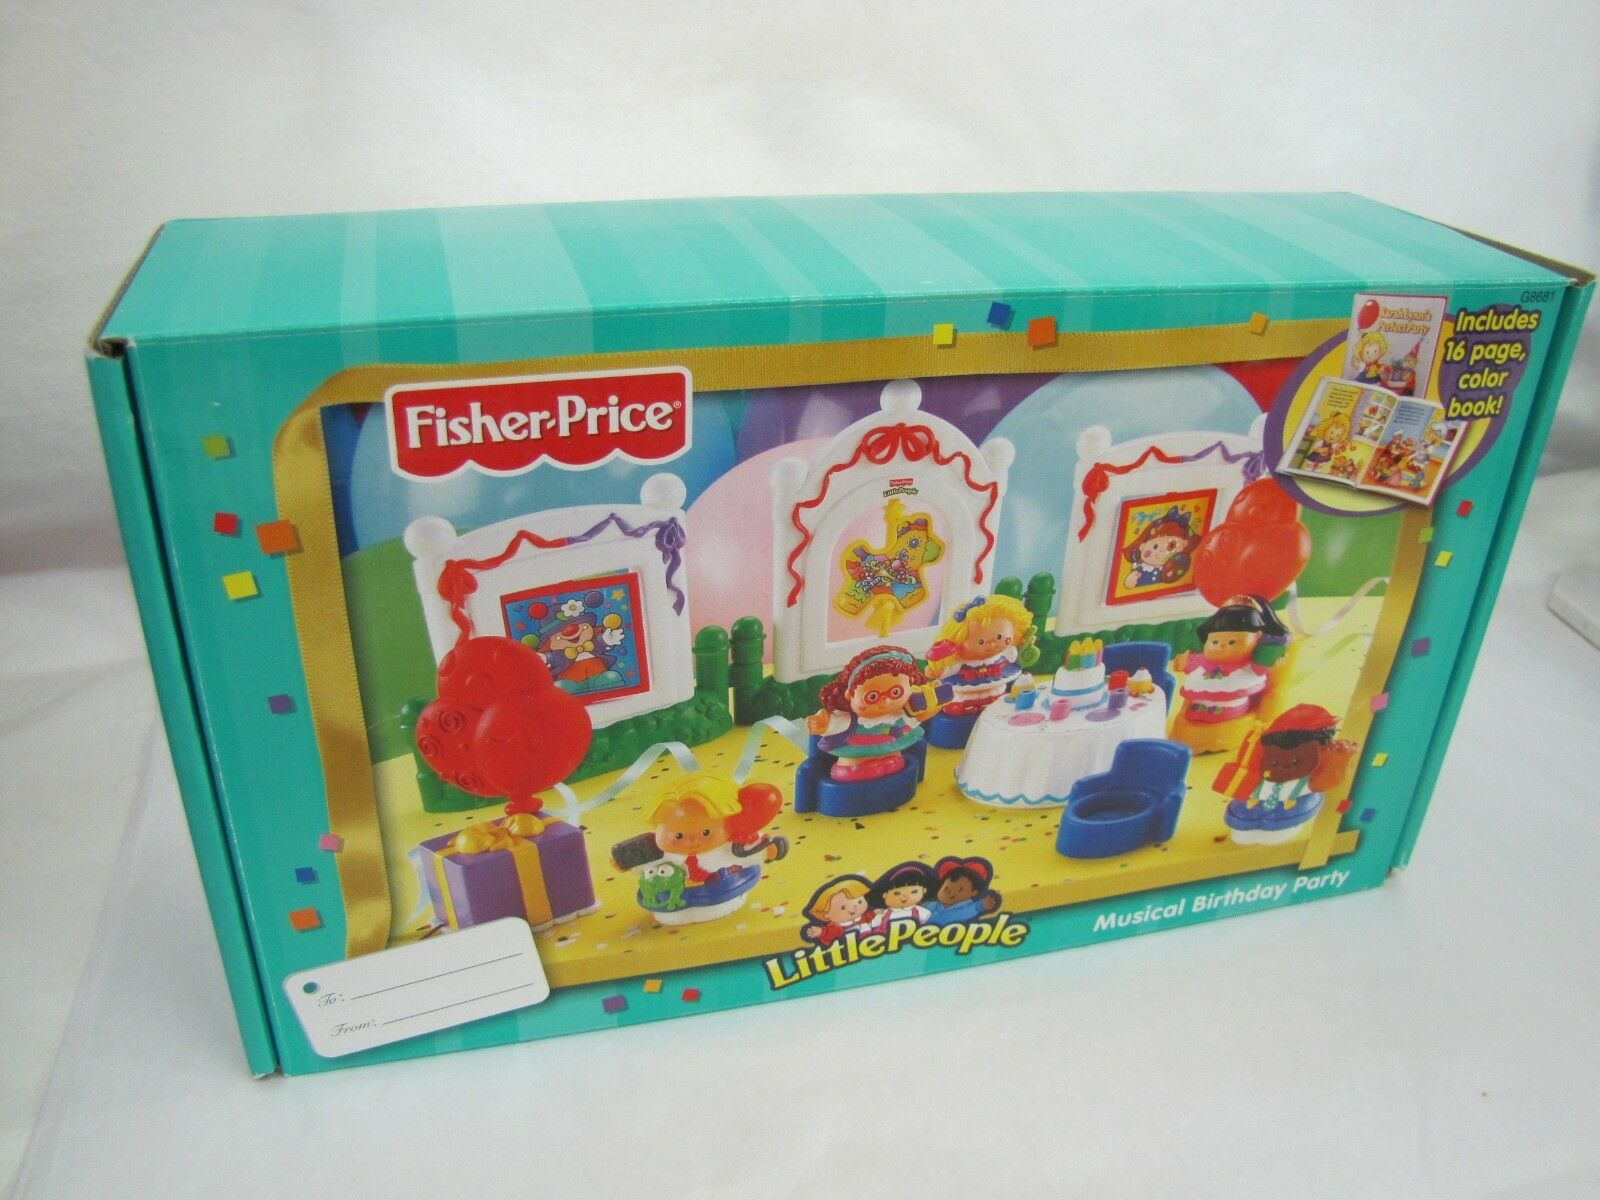 New    Fisher Price LITTLE PEOPLE MUSICAL BIRTHDAY PARTY Music Lights 2004 Rare f14594